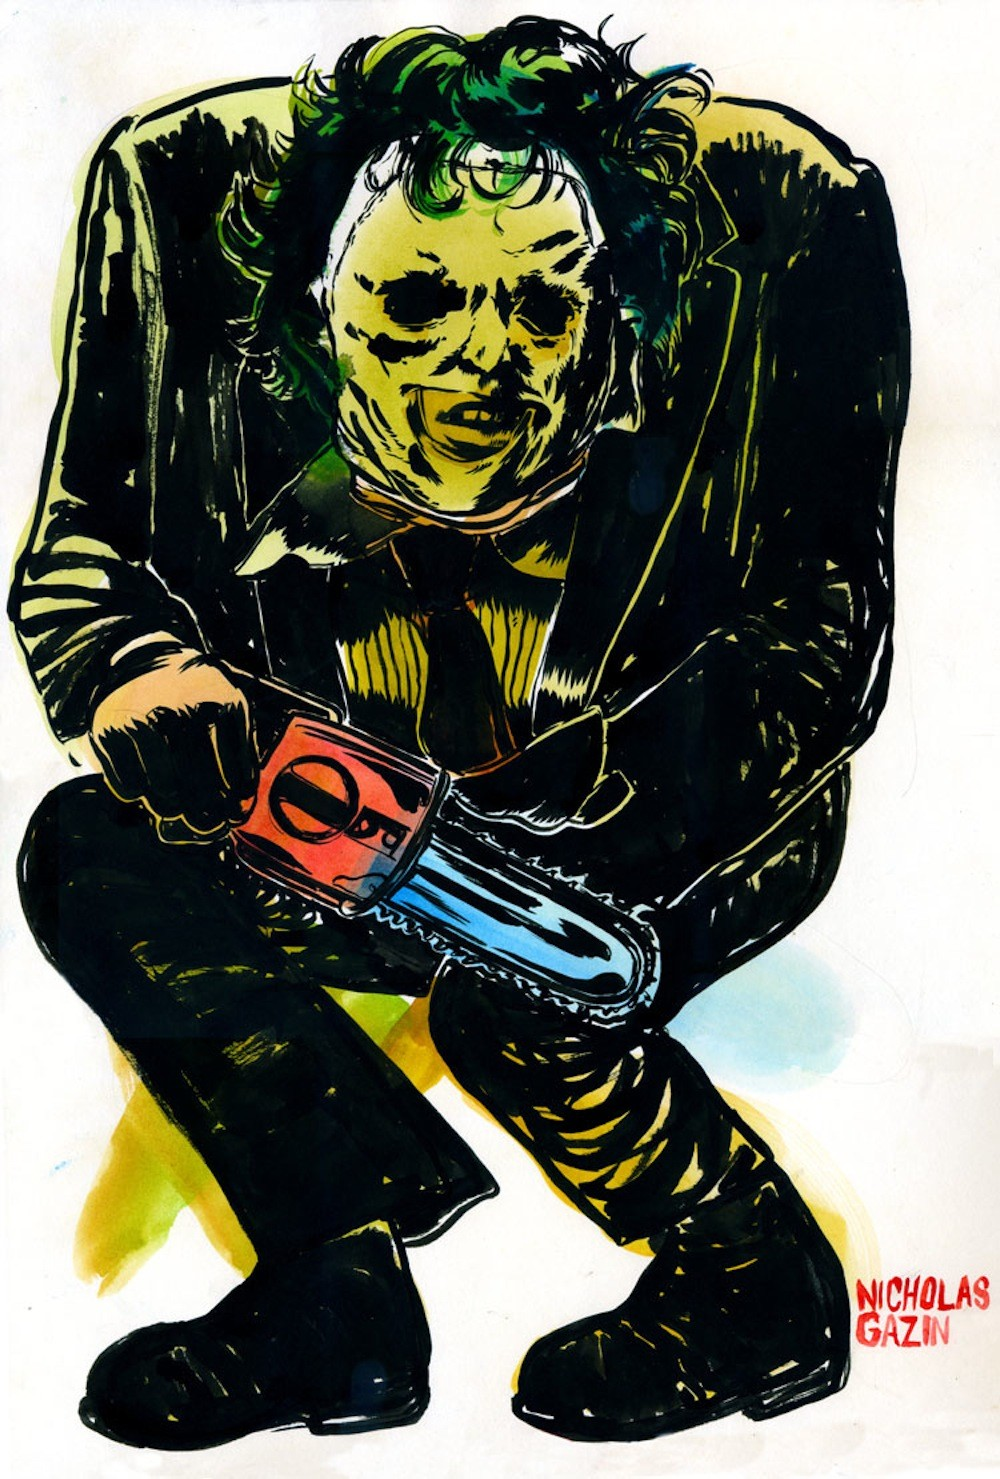 Gallery of Horrors: Original Art Inspired by TEXAS CHAINSAW 3D In Theaters Jan 4